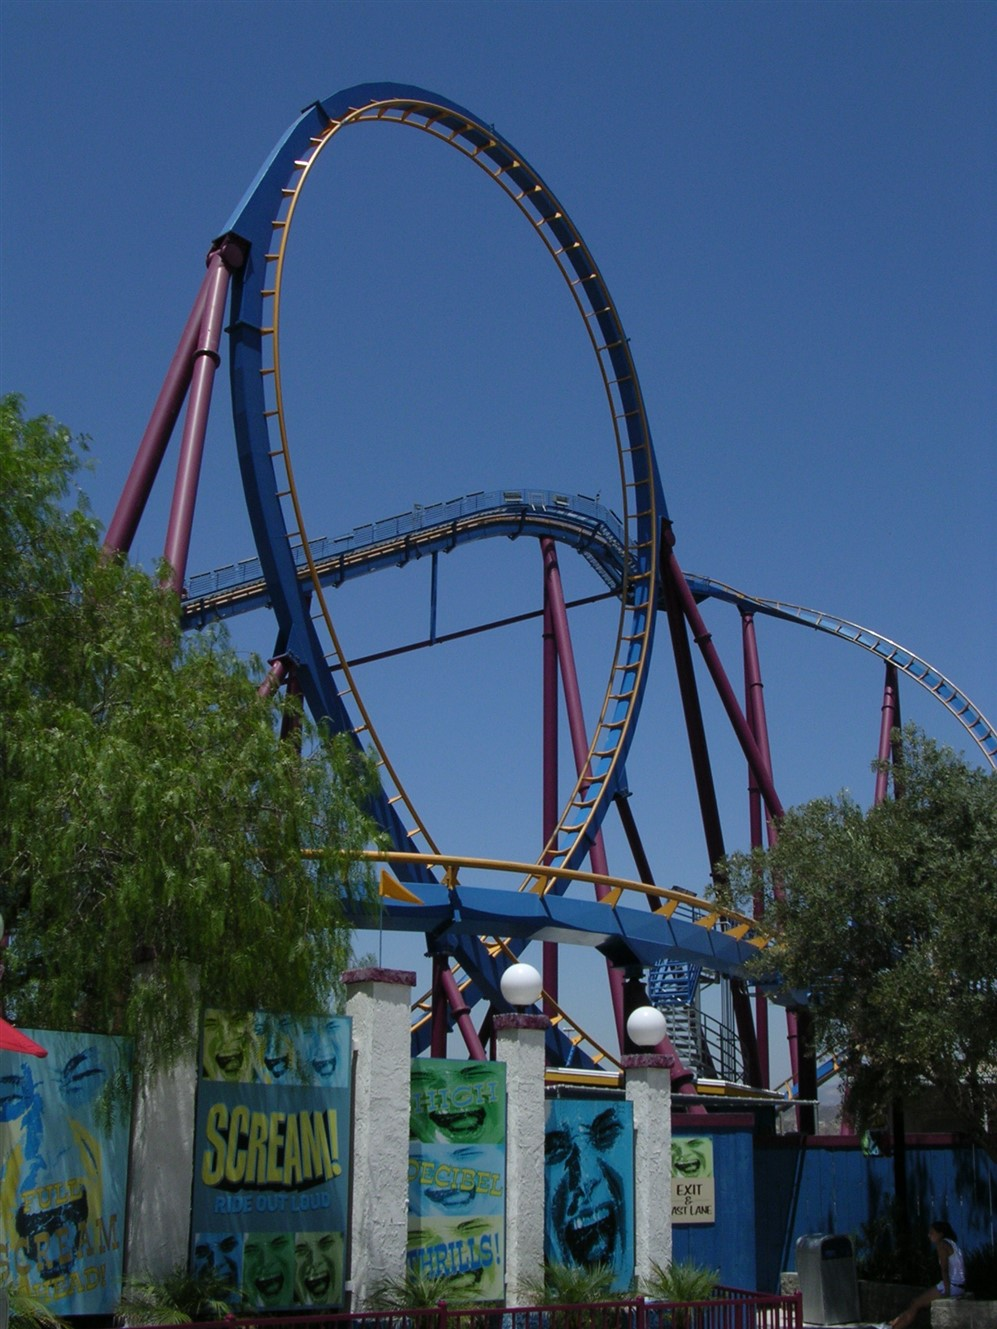 2005 06 30 Magic Mountain California 19.jpg